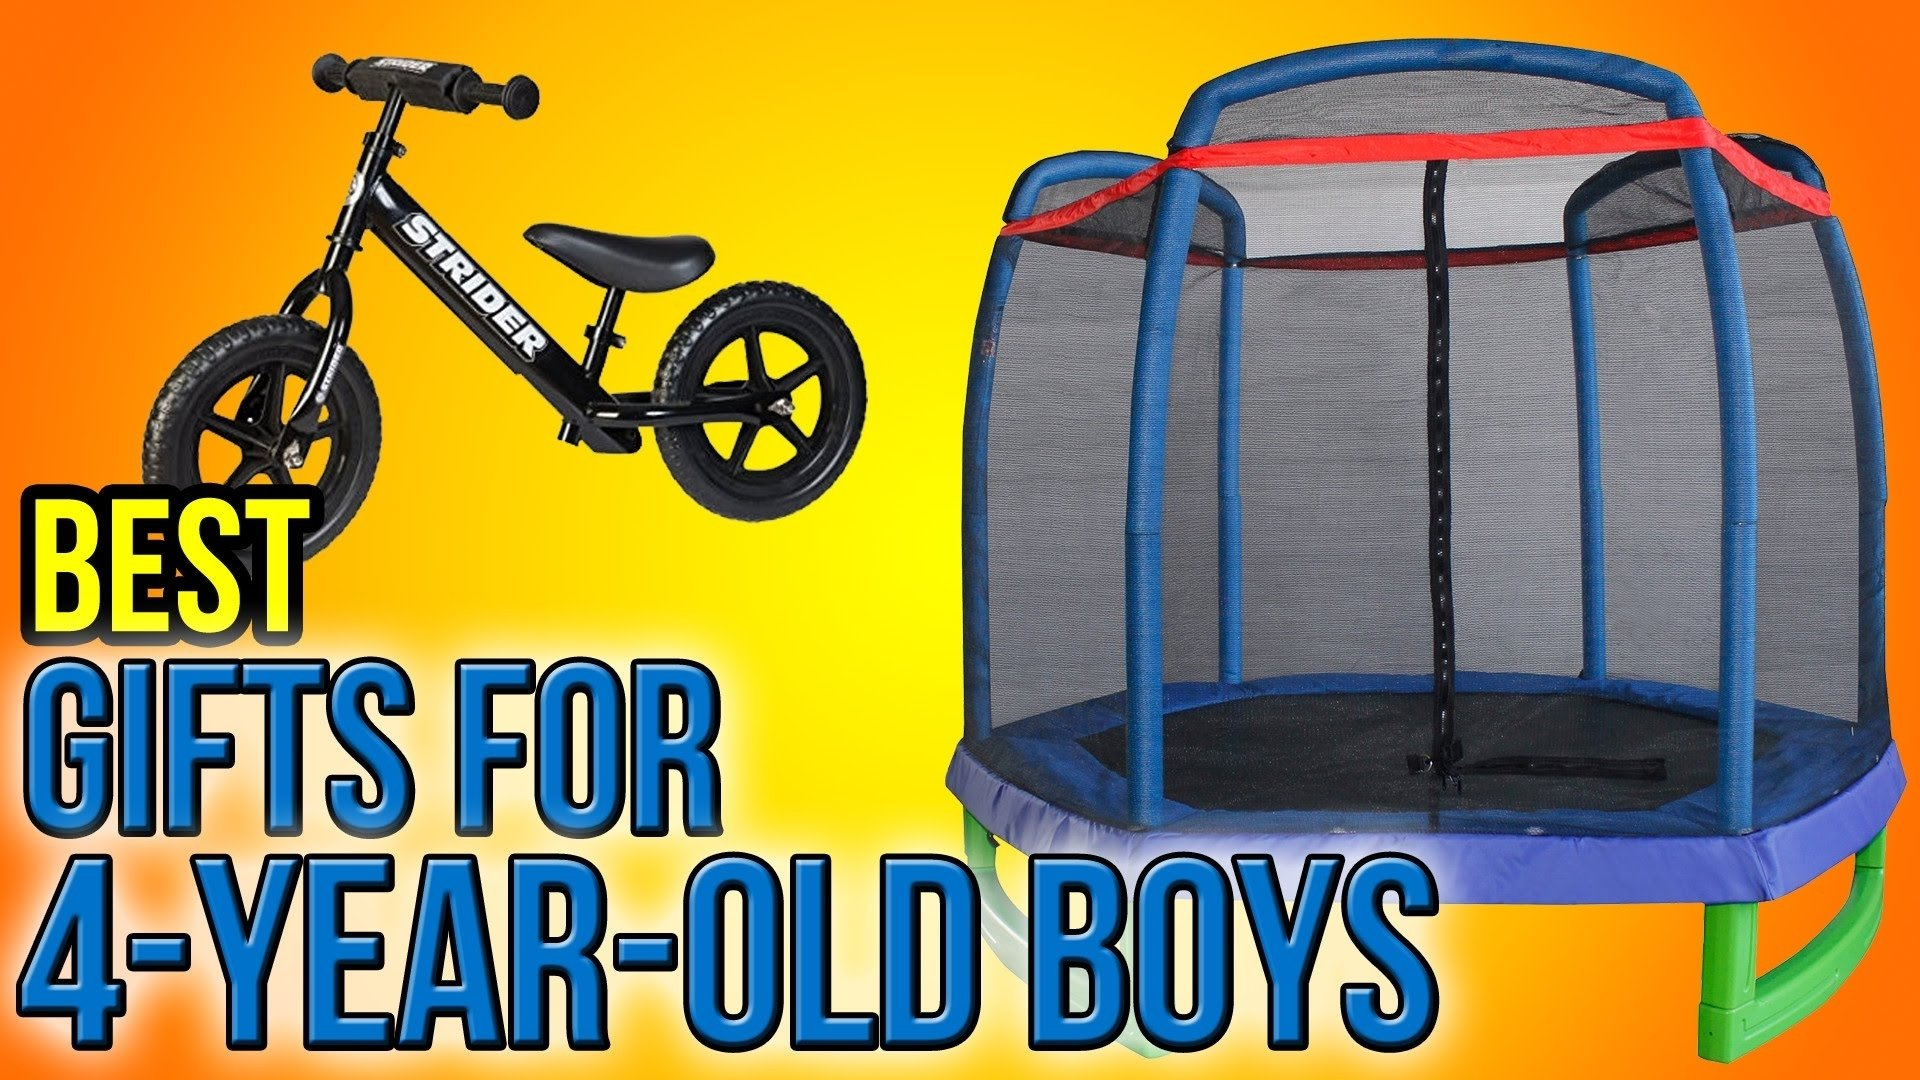 10 Unique Gift Ideas For Four Year Old Boy 10 best gifts for 4 year old boys 2016 youtube 3 2020